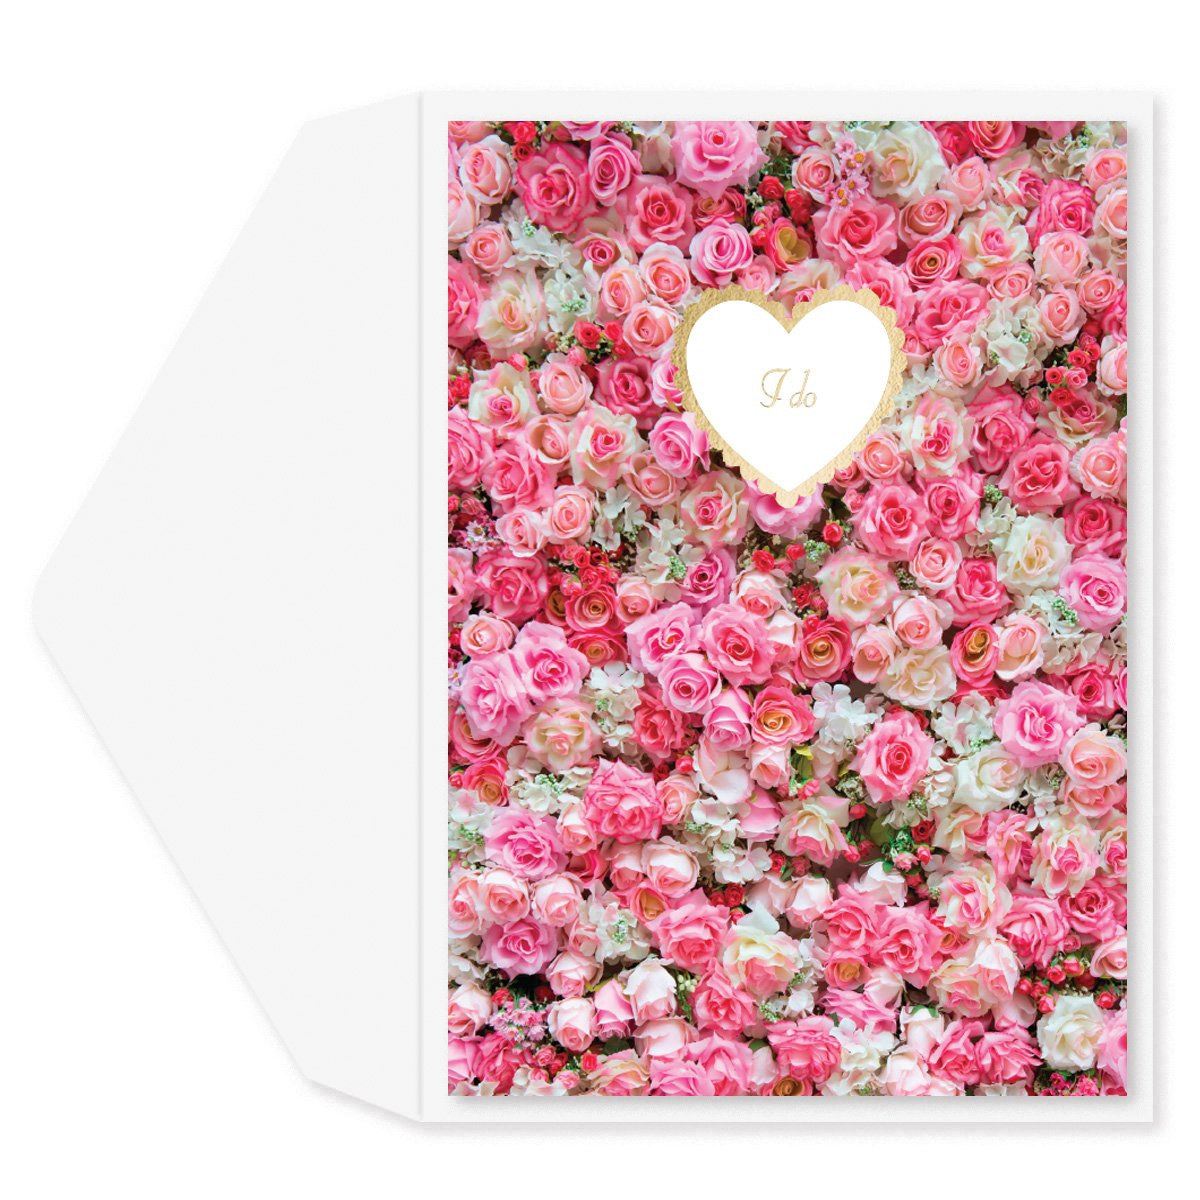 Roses I Do Wedding Card